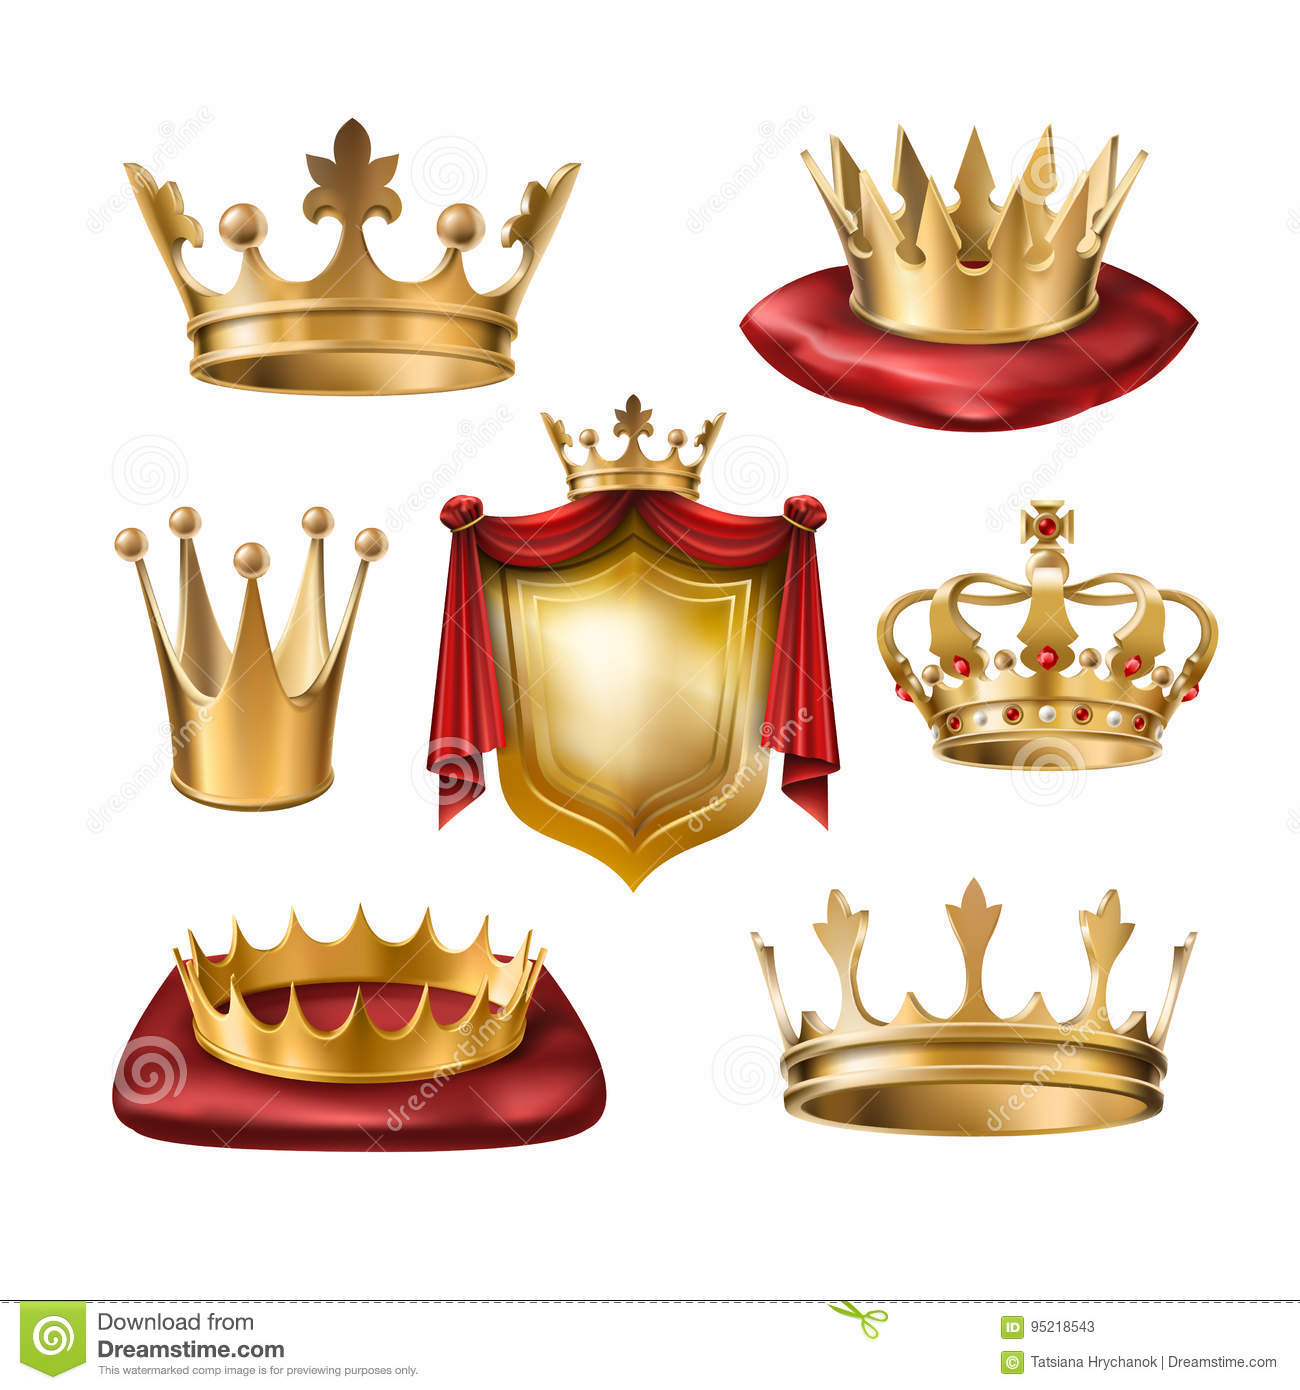 set of icons of royal golden crowns of various kinds and